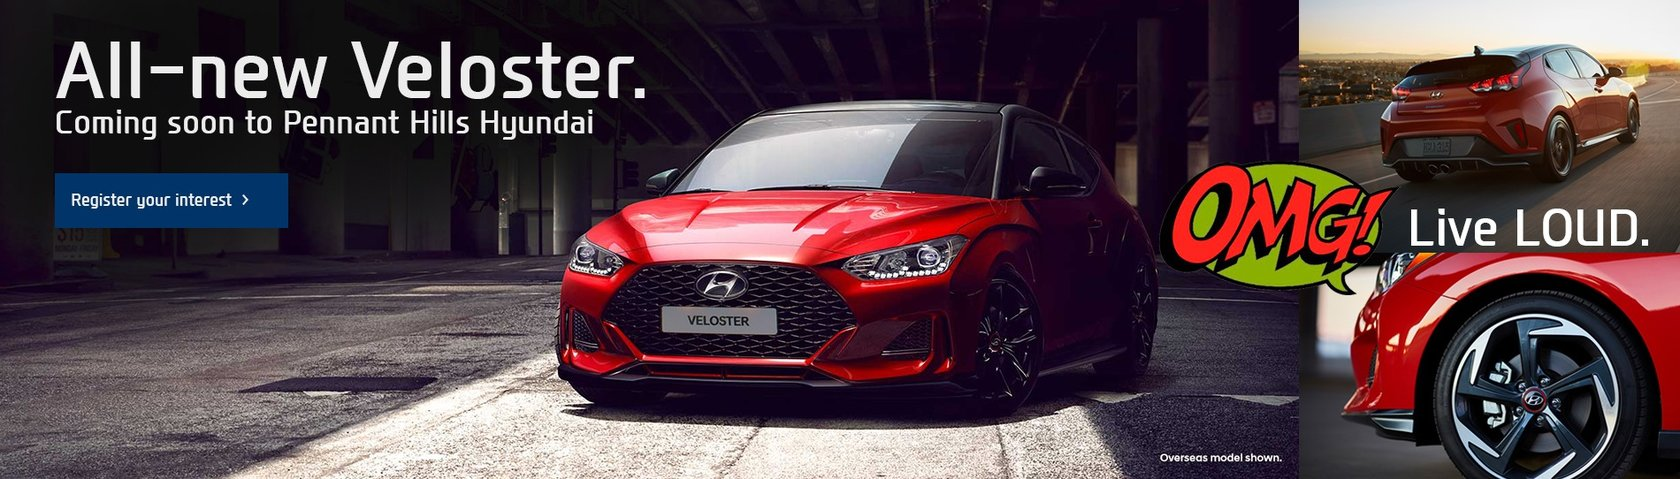 Pennant Hills Hyundai - All-New Veloster